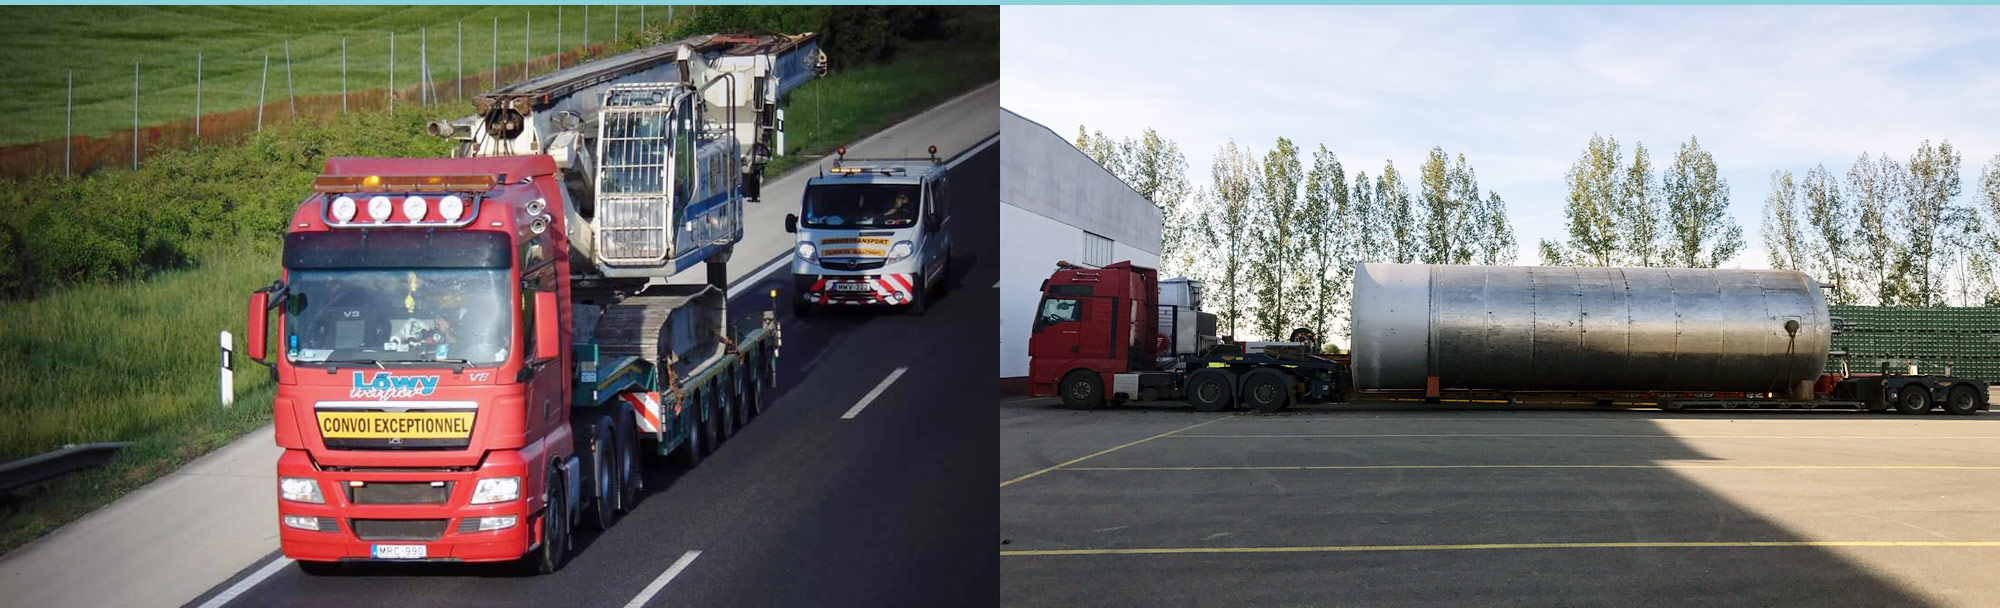 Transport of oversized and overweight vehicles, machines, equipments, heavy transport